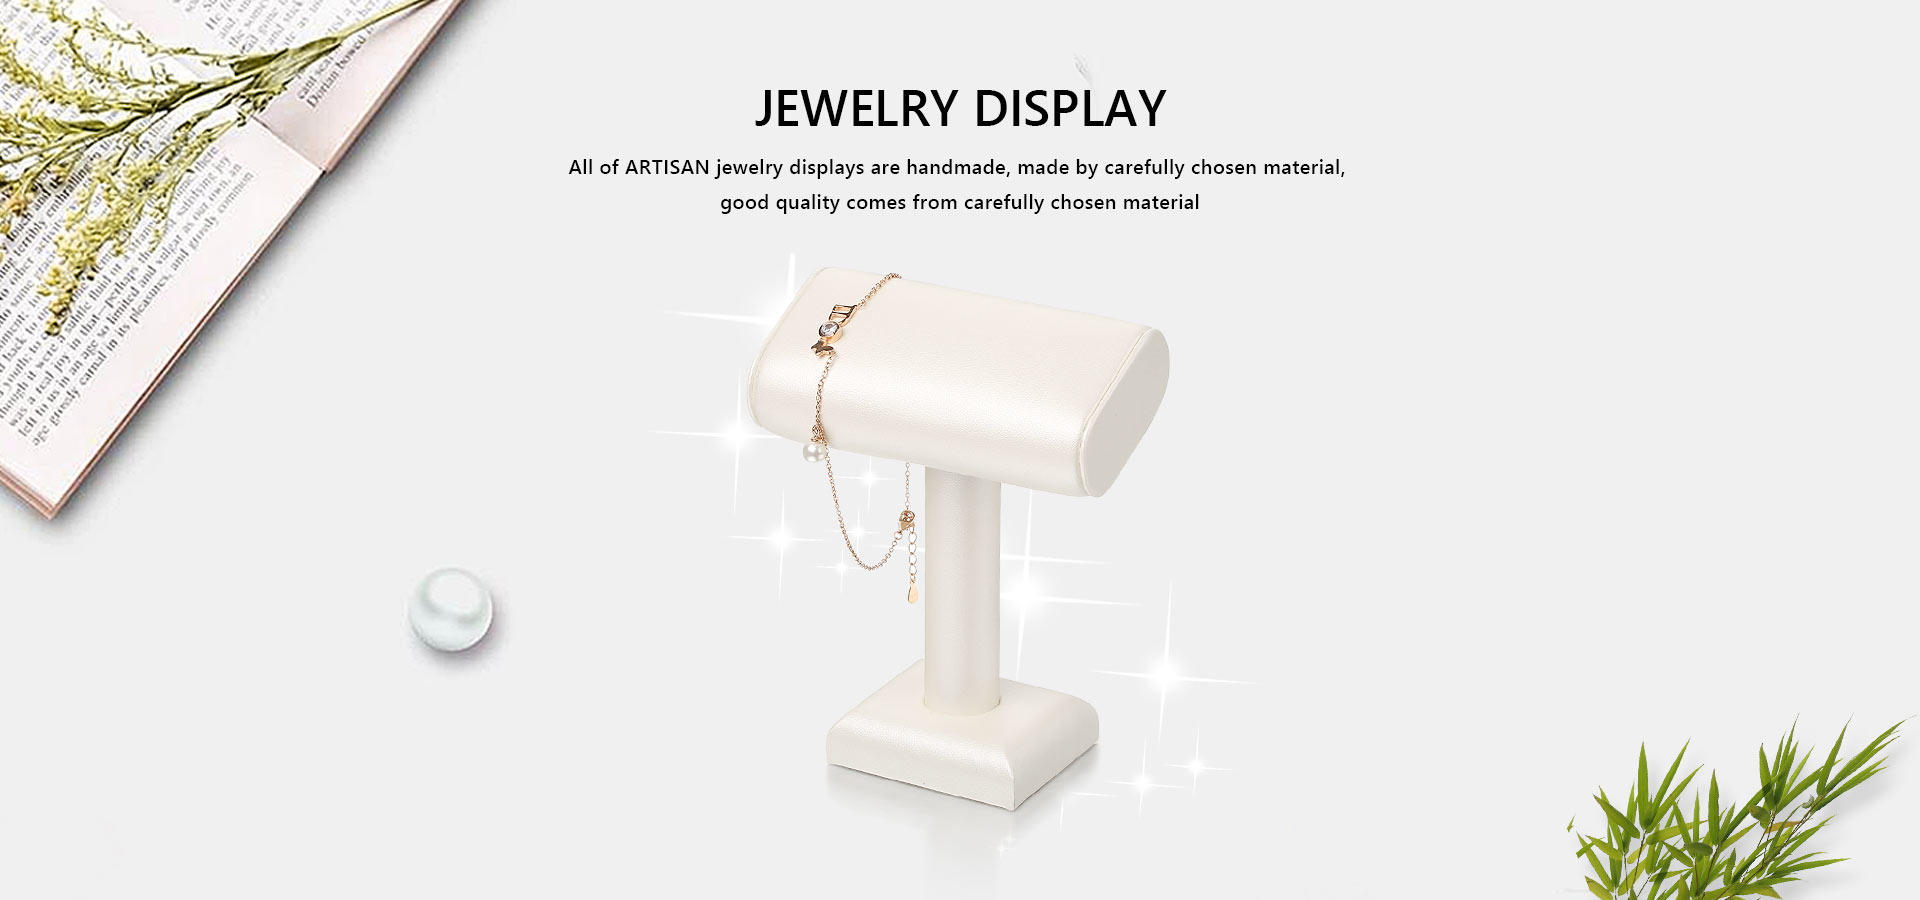 counter necklace design velvet jewelry display stands Artisan Brand